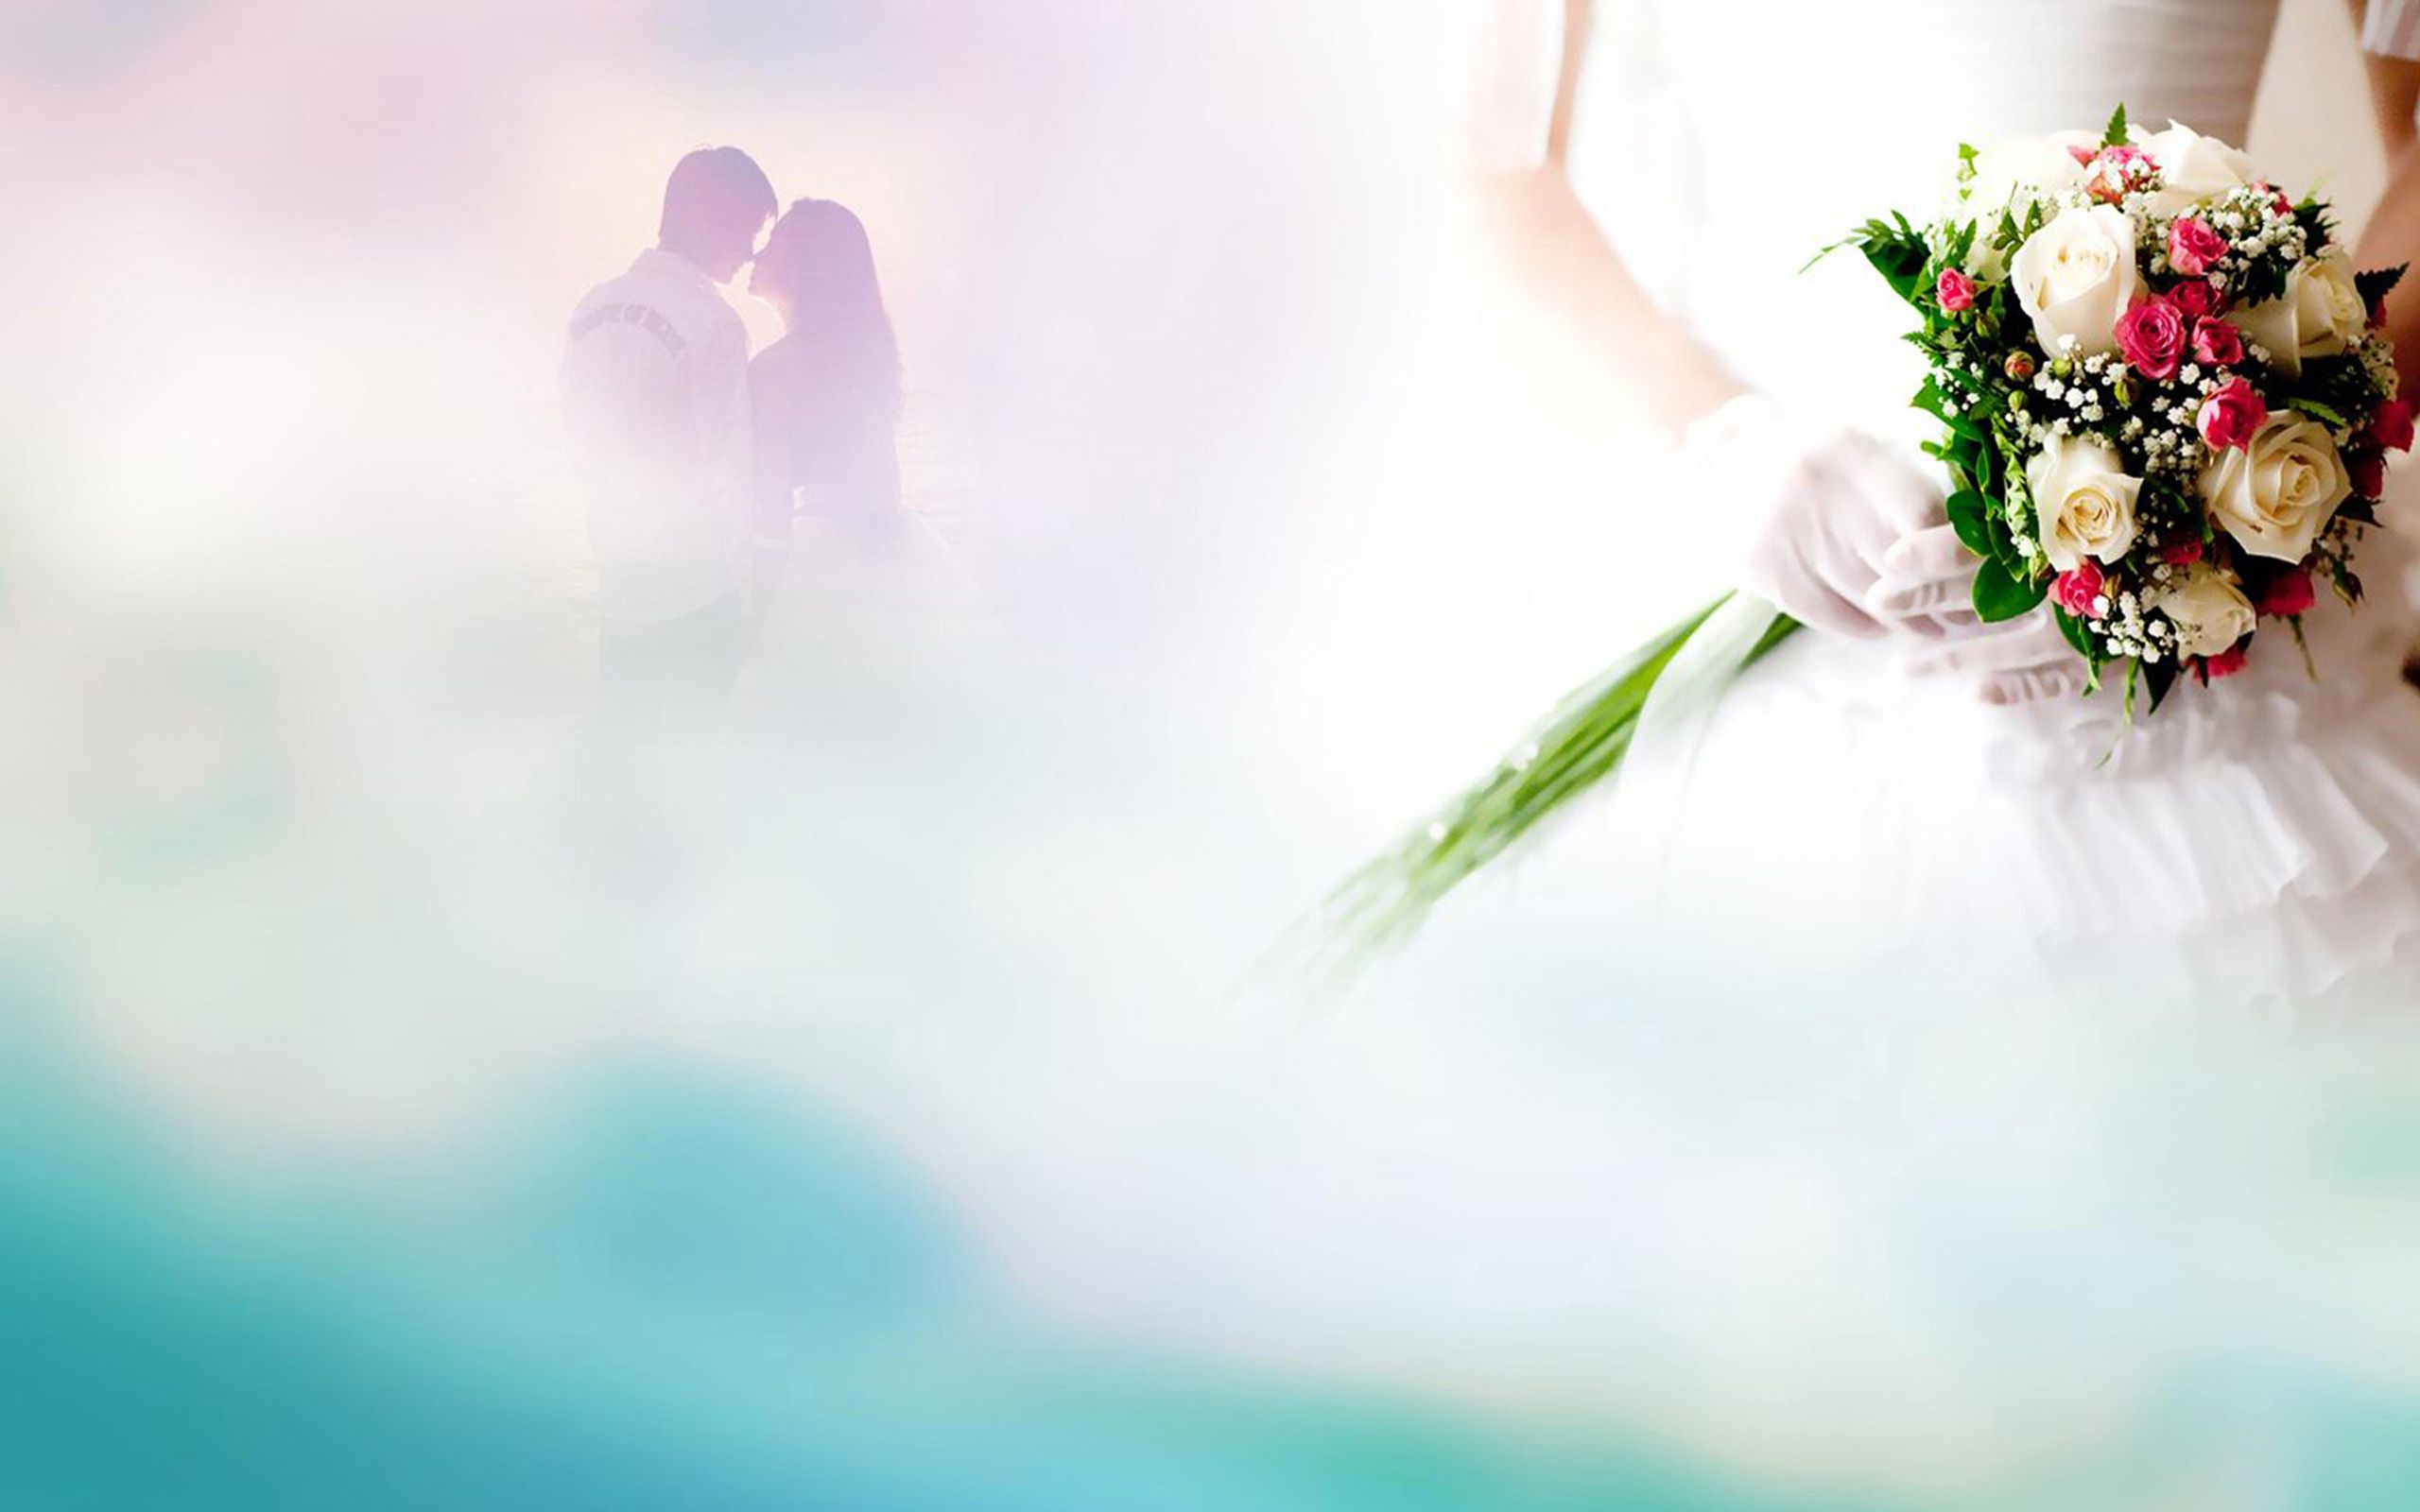 Best Background For Wedding Pictures In 2020 Wedding Background Wallpaper Wedding Background Wedding Background Images